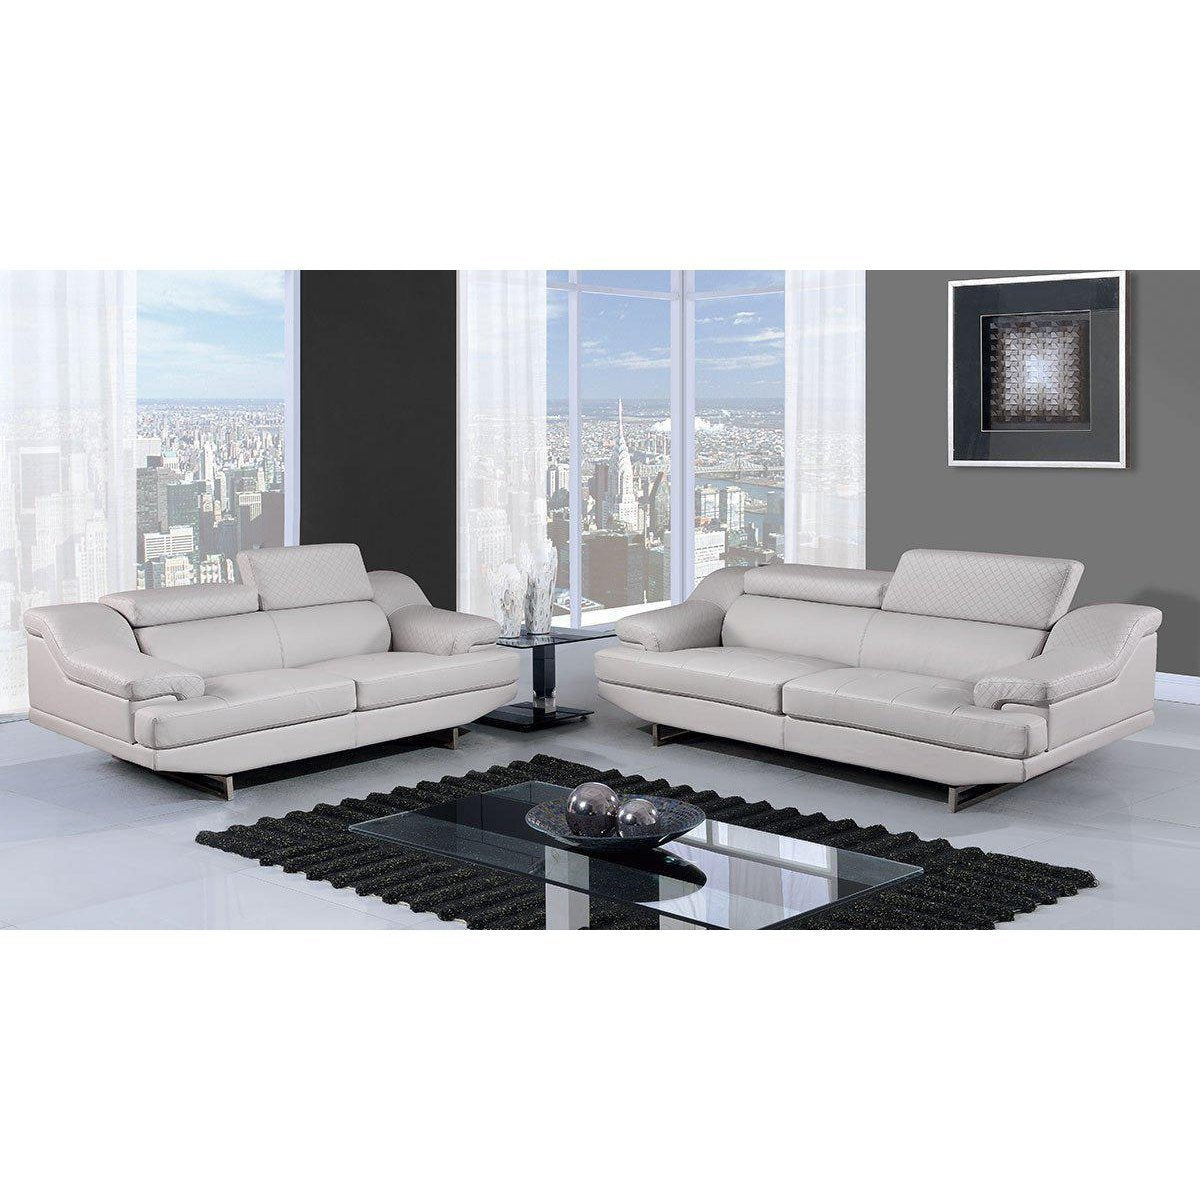 Elin Living Room Set